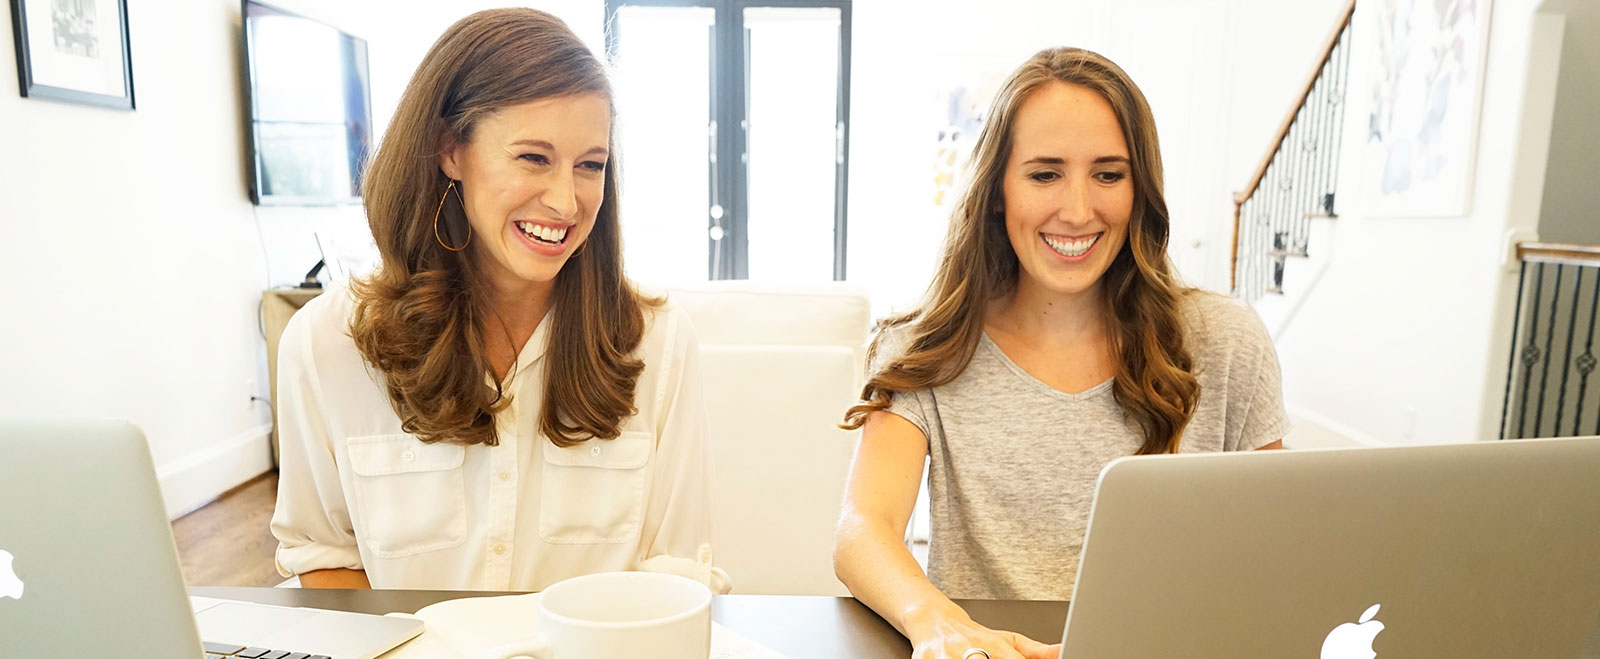 This is a picture of Lindsay Chernosky and Alexis Coutant, owners of DigitaLemonade, a website design and website development company in Houston, TX.